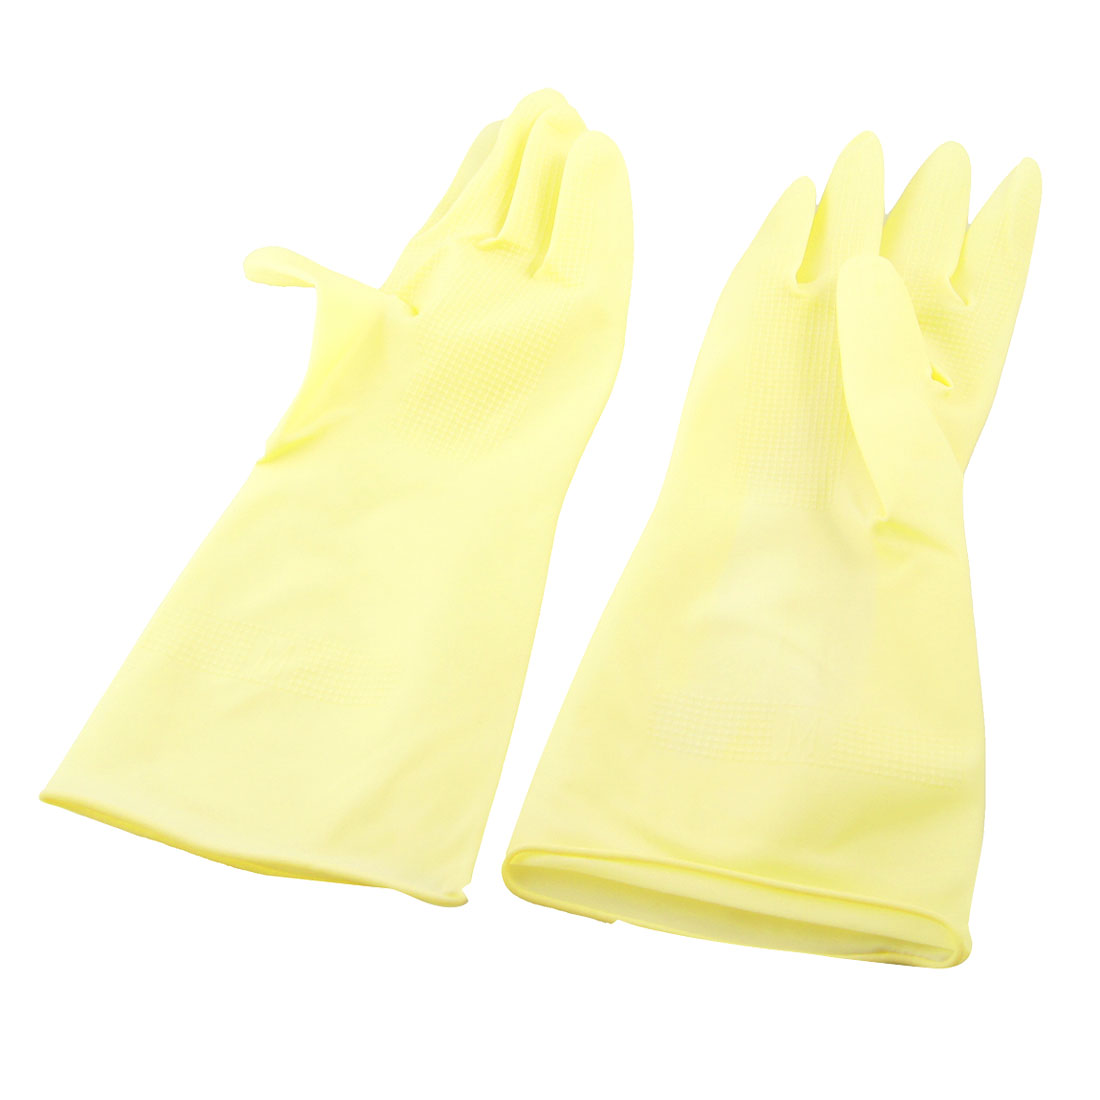 Unique Bargains Pair Protective Kitchen Dishes Washing Cleaning Latex Work Long Gloves - image 1 of 1